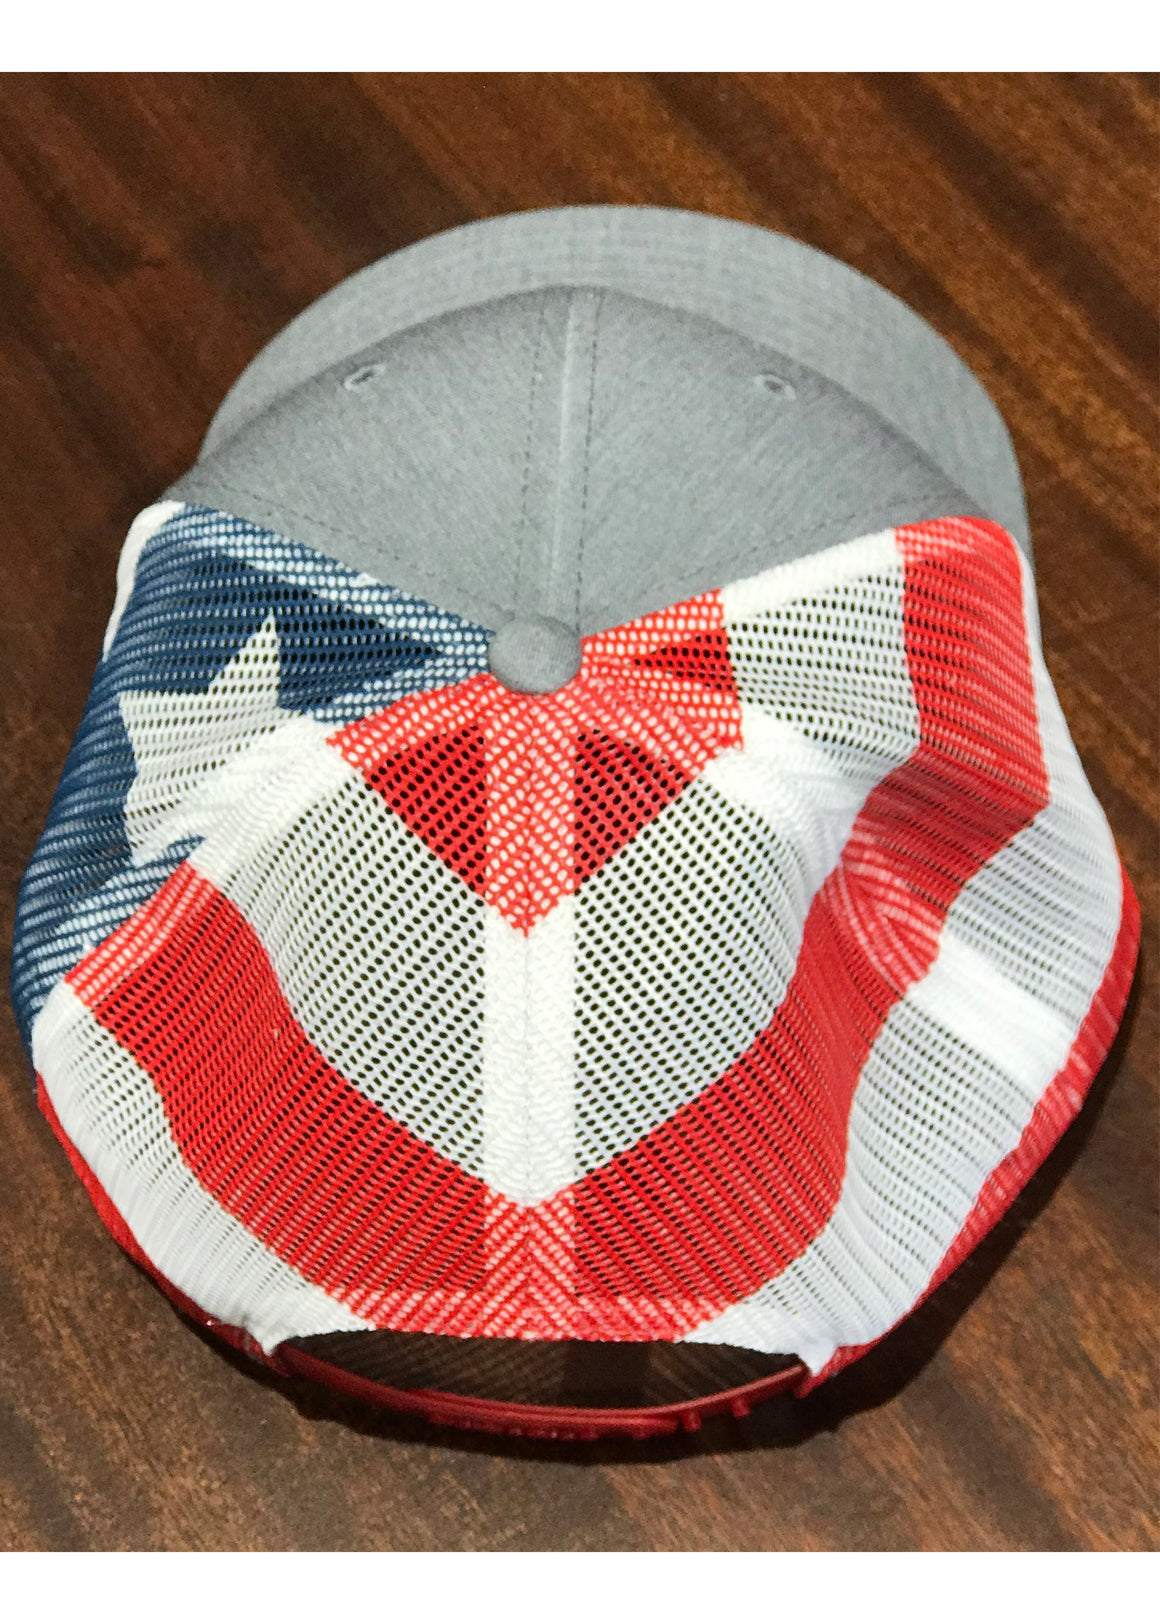 Trucker Hat with Palmetto and Crescent Moon Leather Patch | Grey American Flag